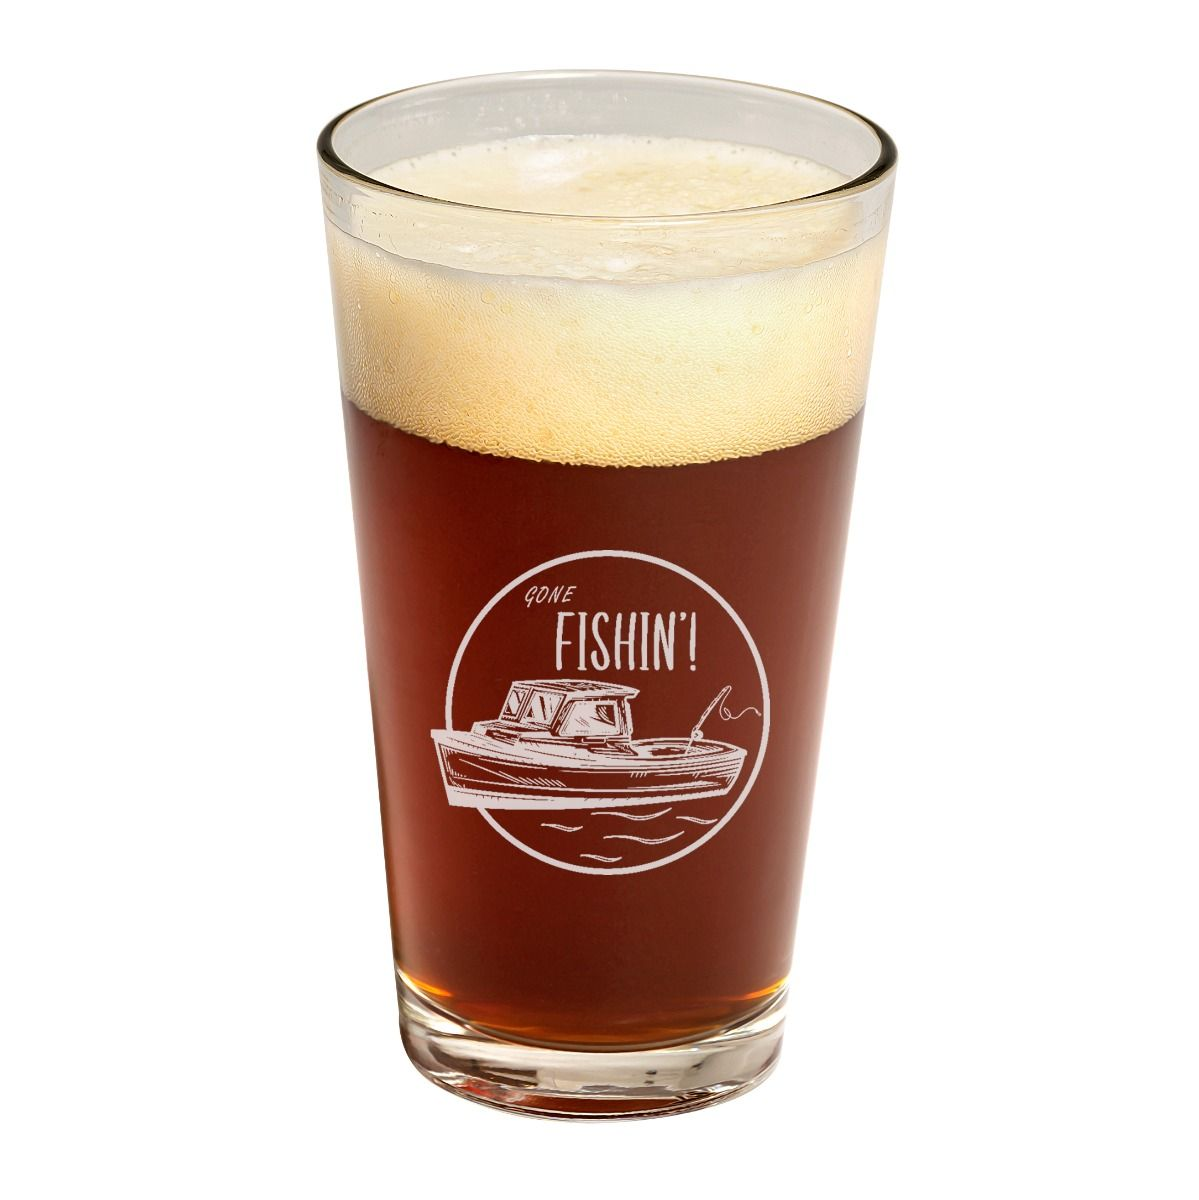 Boat Fishin' Father's Day Pint Glass